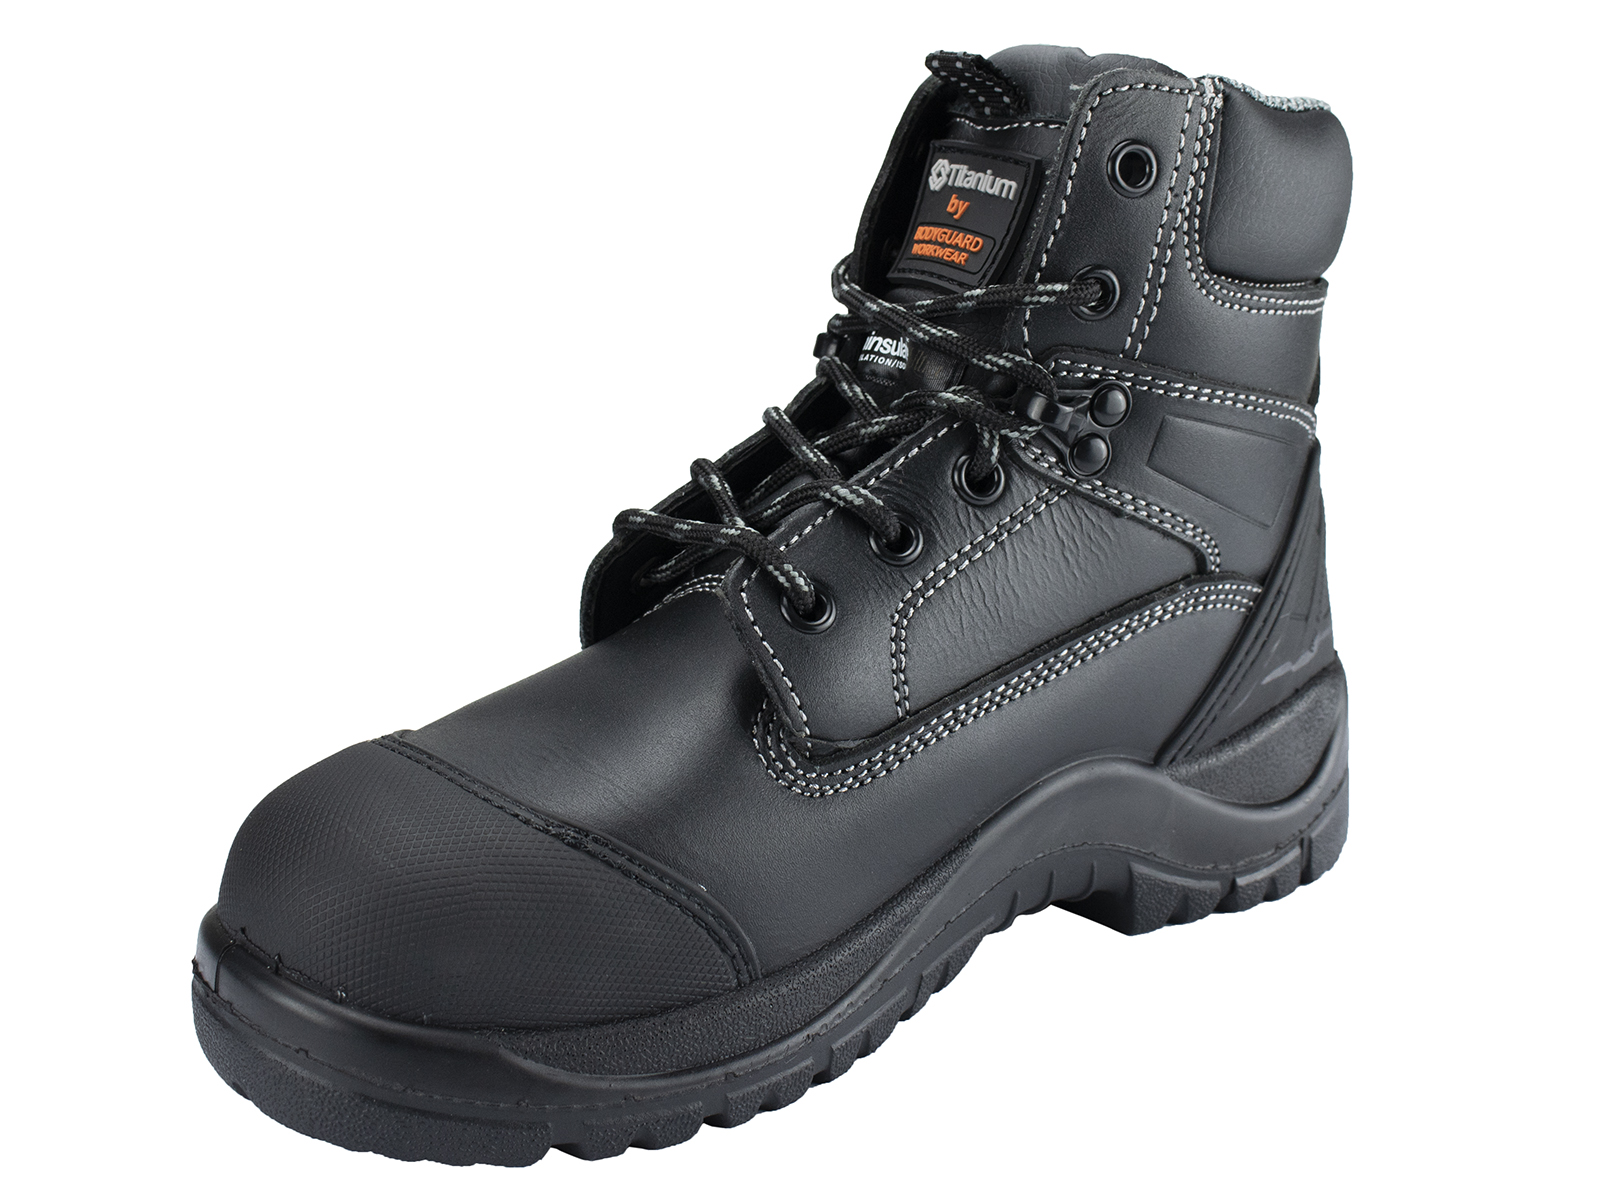 Titanium Leather Safety Boots w/ Thinsulate insulation throughout  - pair